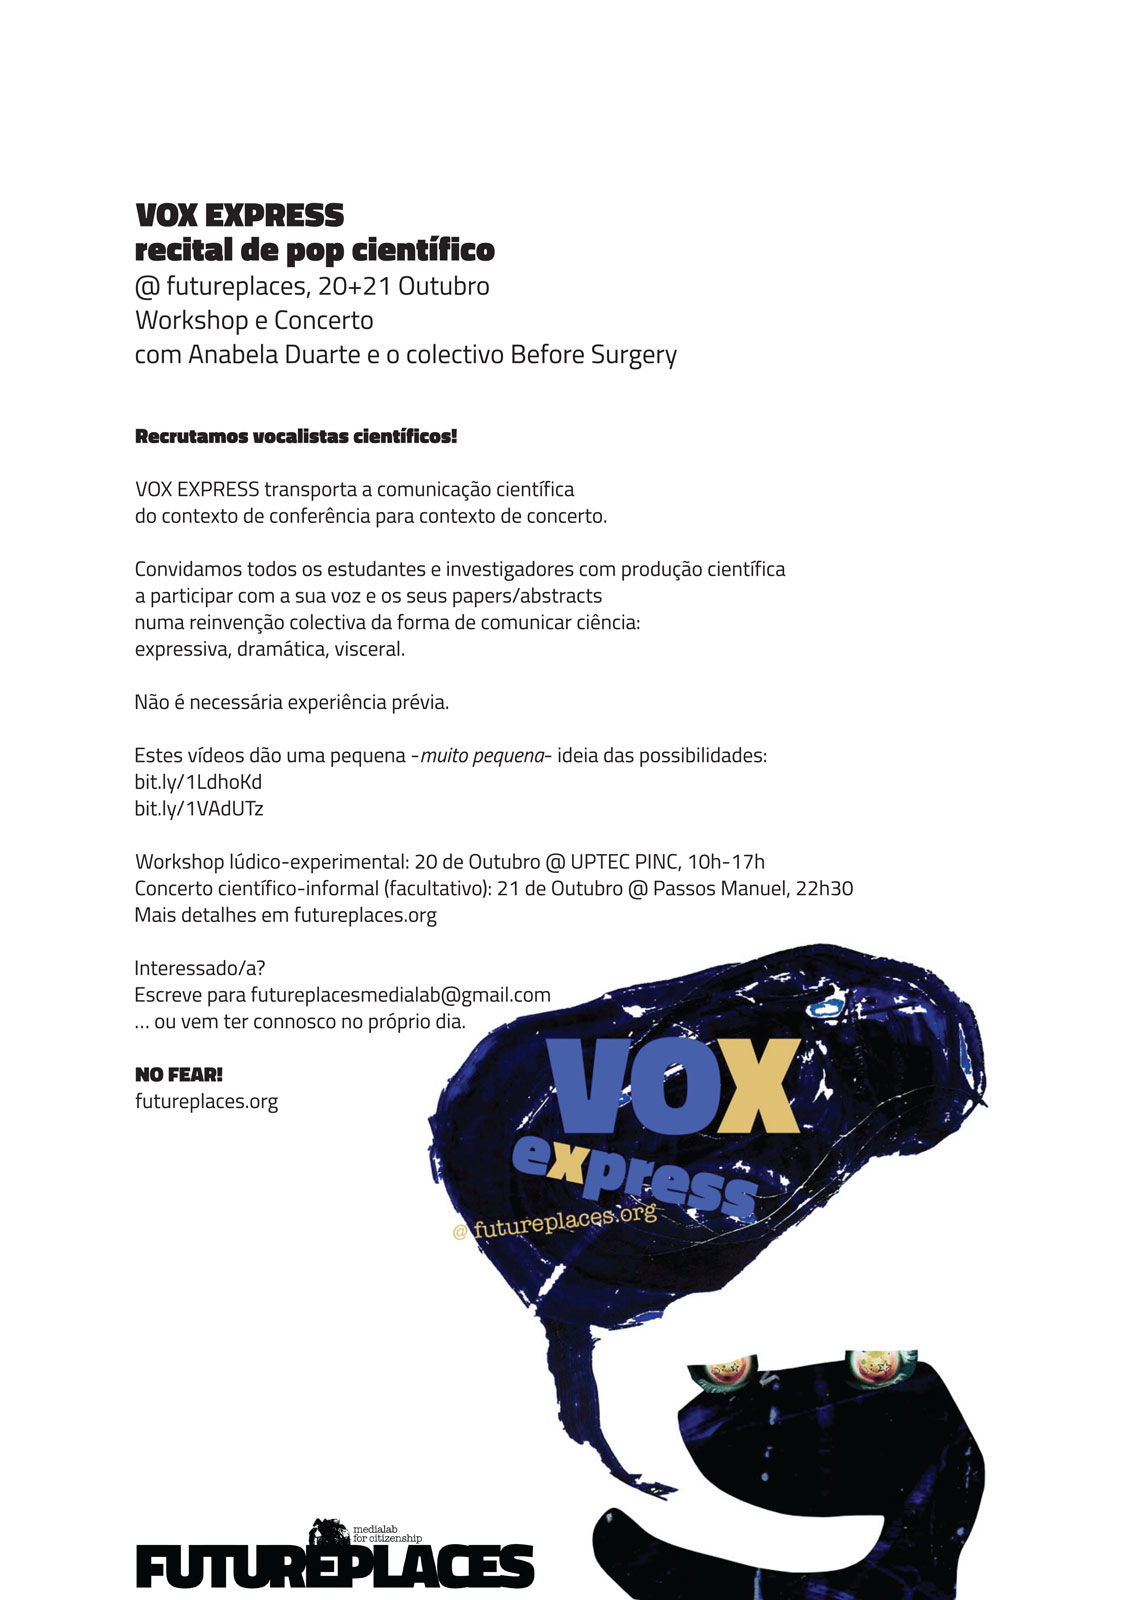 voxexpress_call